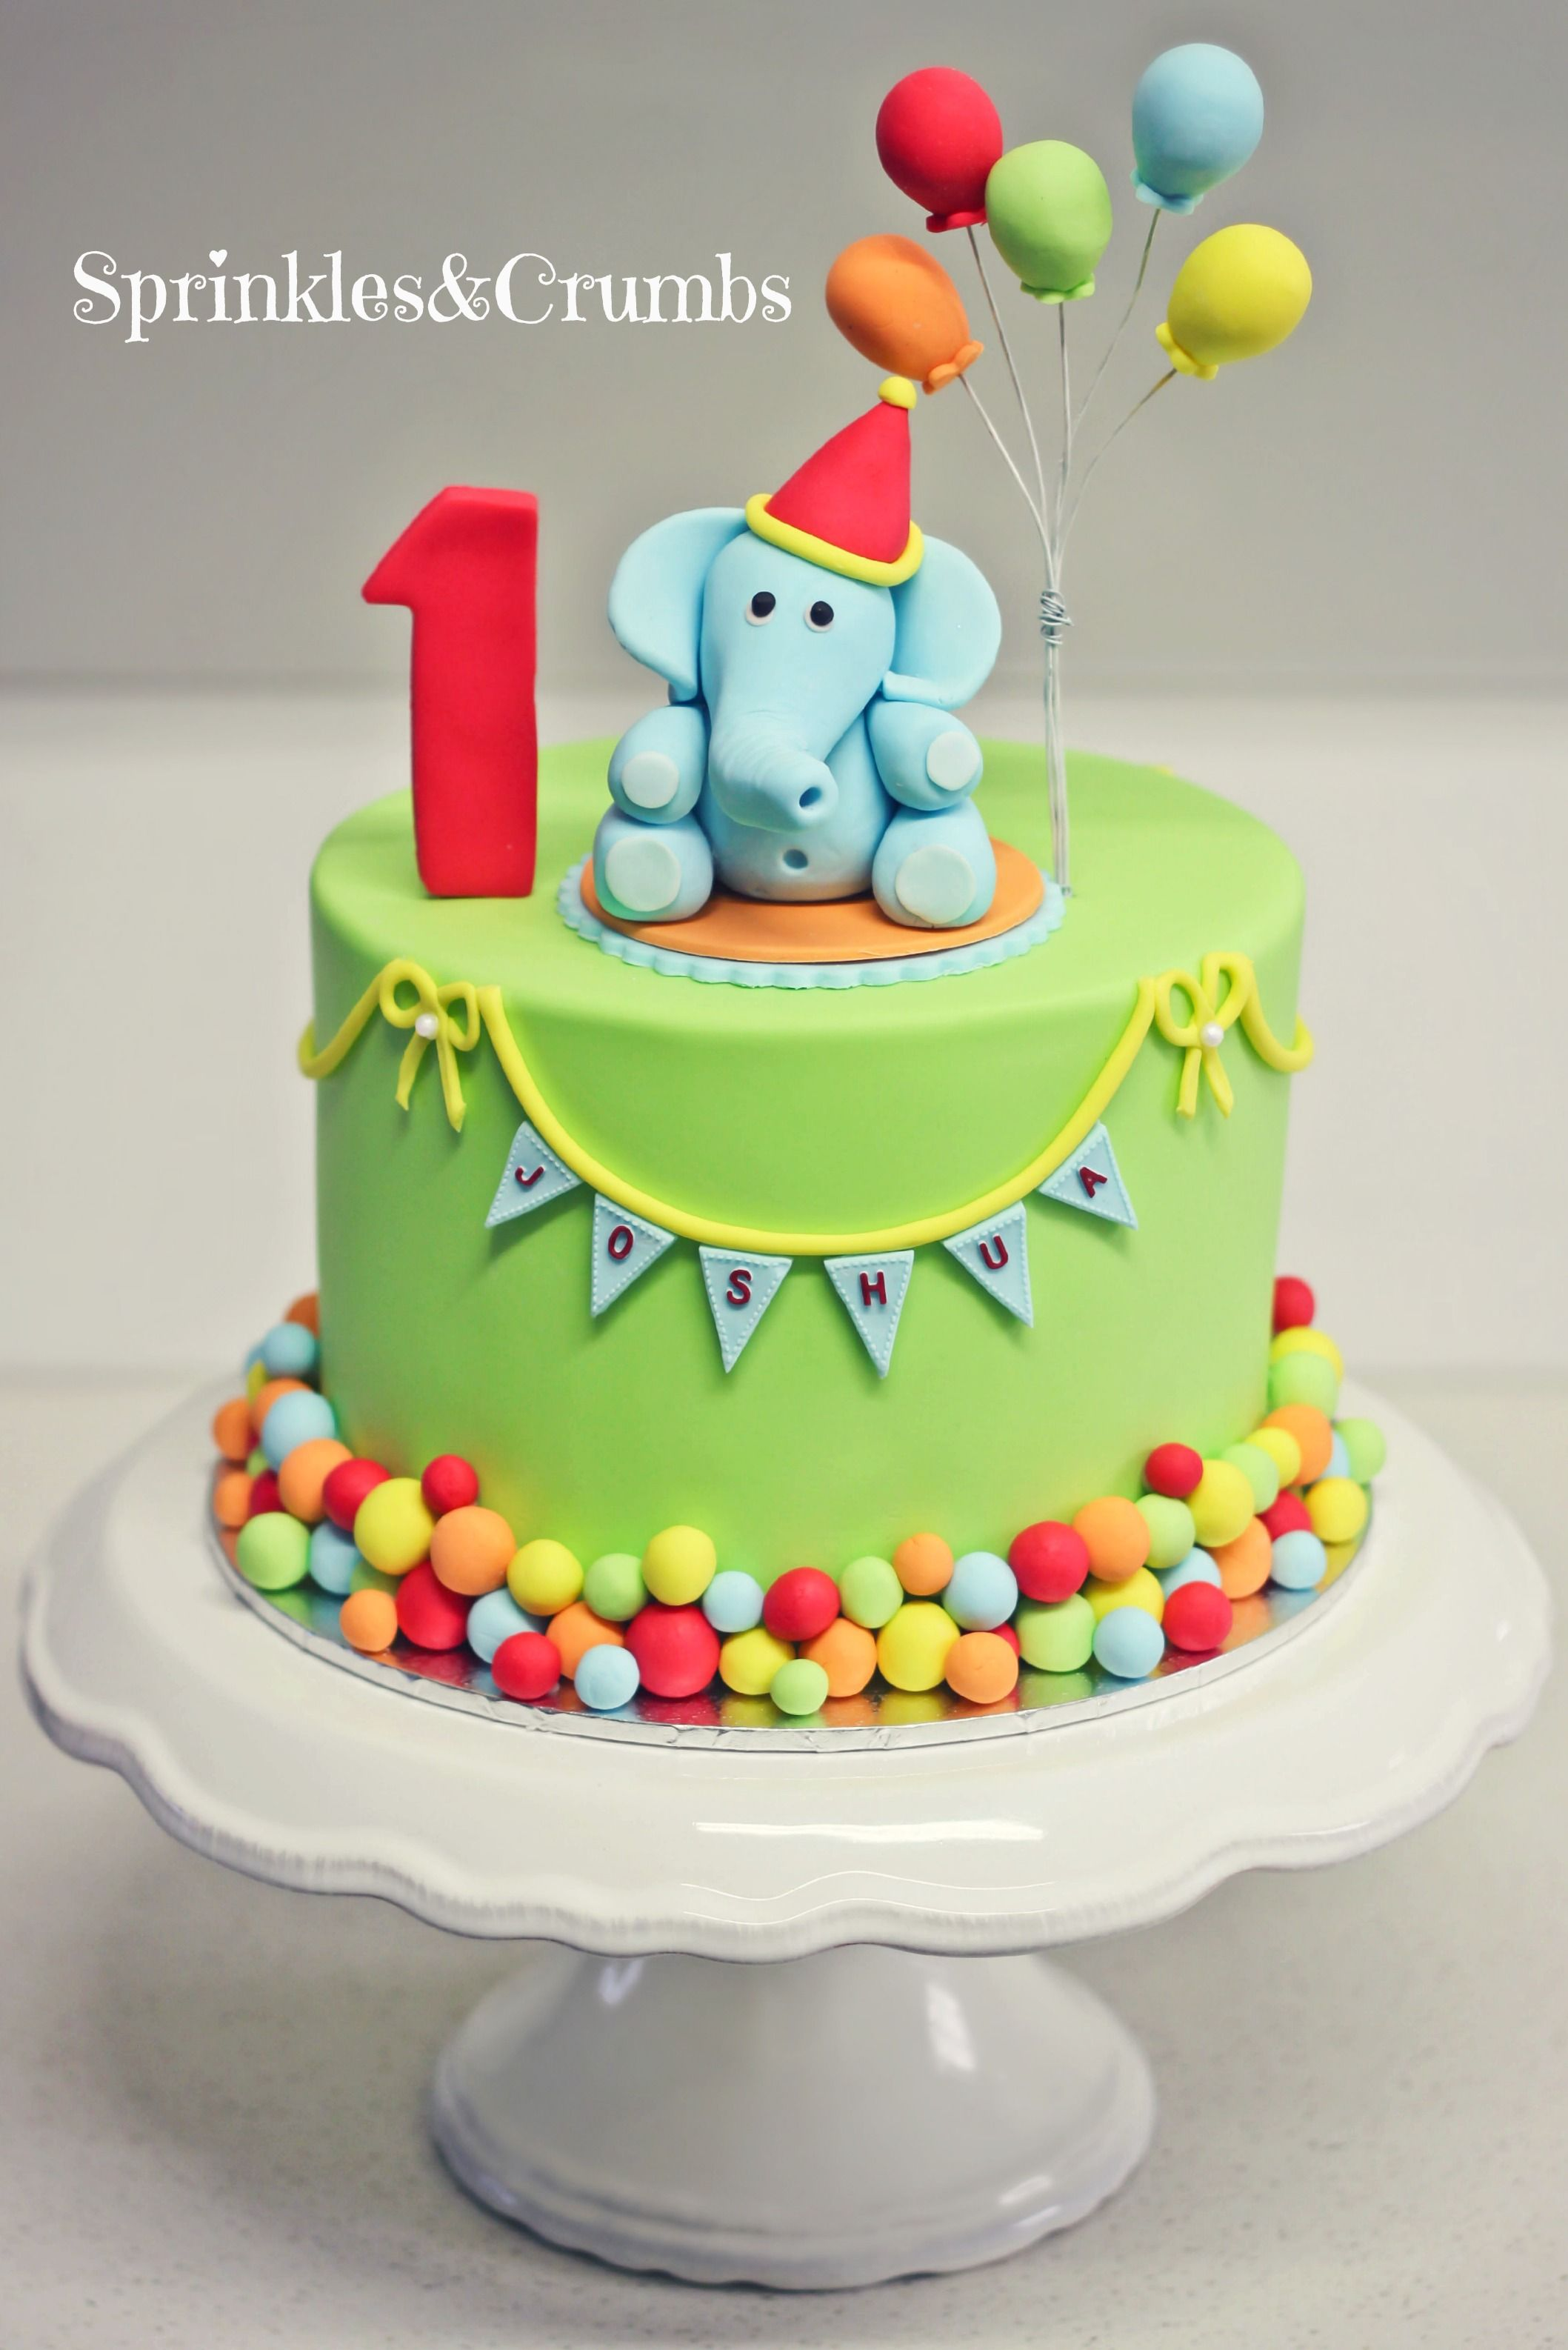 1st Birthday Cake Boy.A Colourful Circus Themed First Birthday Cake Featuring An